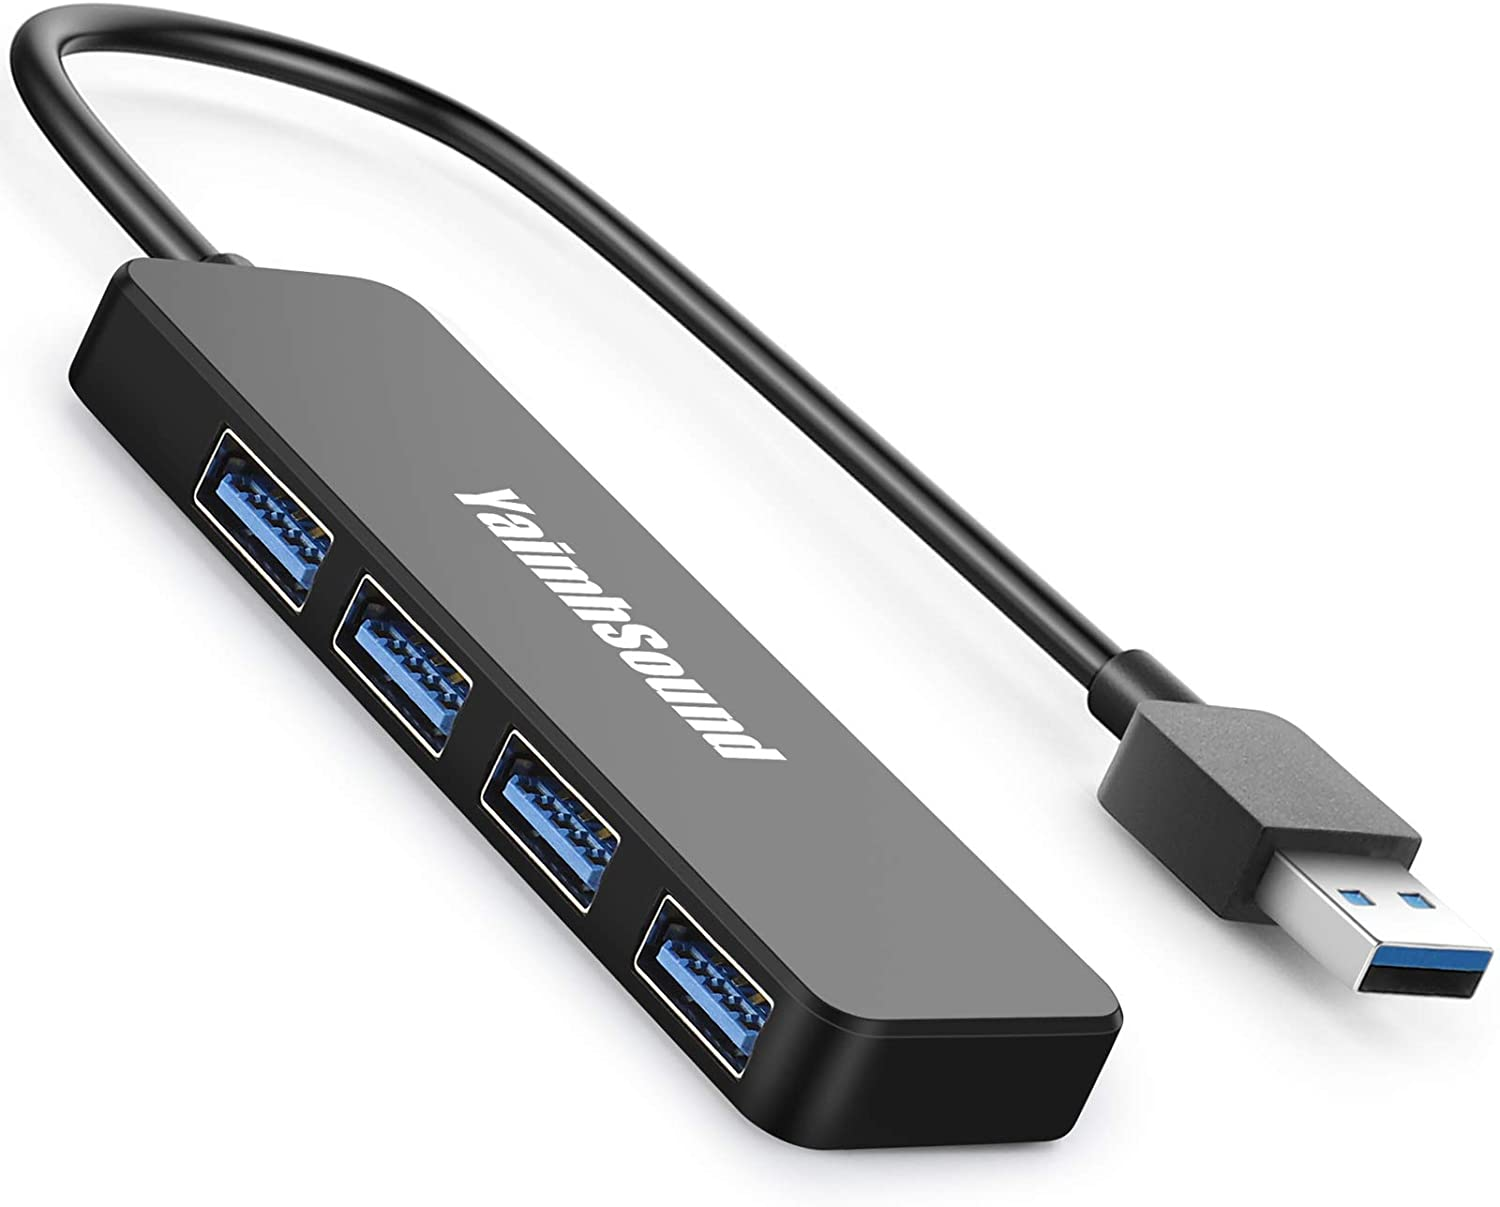 4-Port USB Hub 3.0, T-Sound USB Splitter for Laptop, Ps4 Keyboard and Mouse Adapter for Dell, Asus, HP, MacBook Air, Surface Pro, Acer, Xbox, Flash Drive, HDD, Console, Printer, Camera